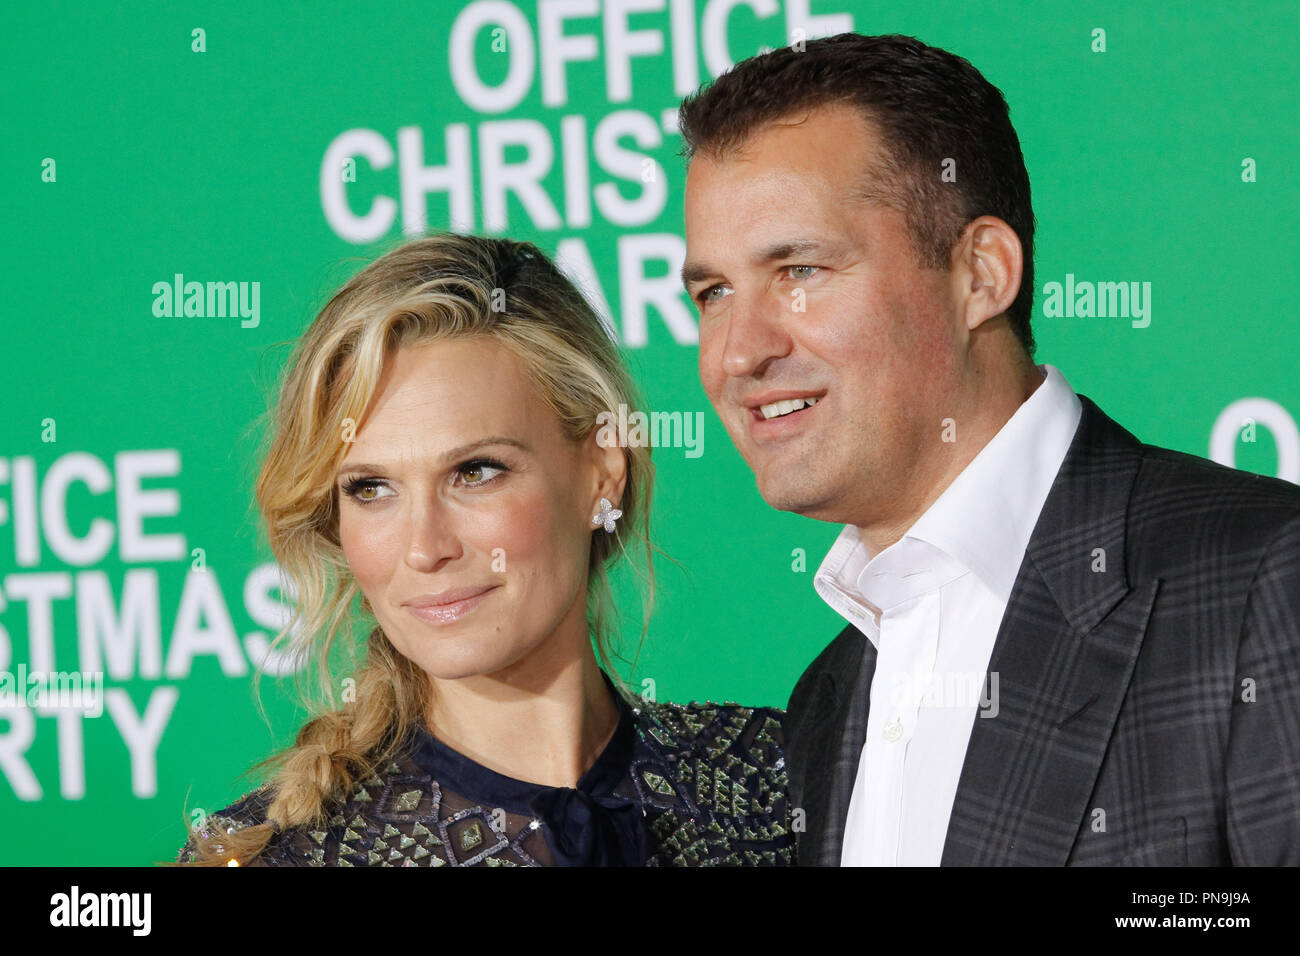 719b27868c691 Molly Sims, Scott Stuber at the premiere of Paramount Pictures' 'Office  Christmas Party